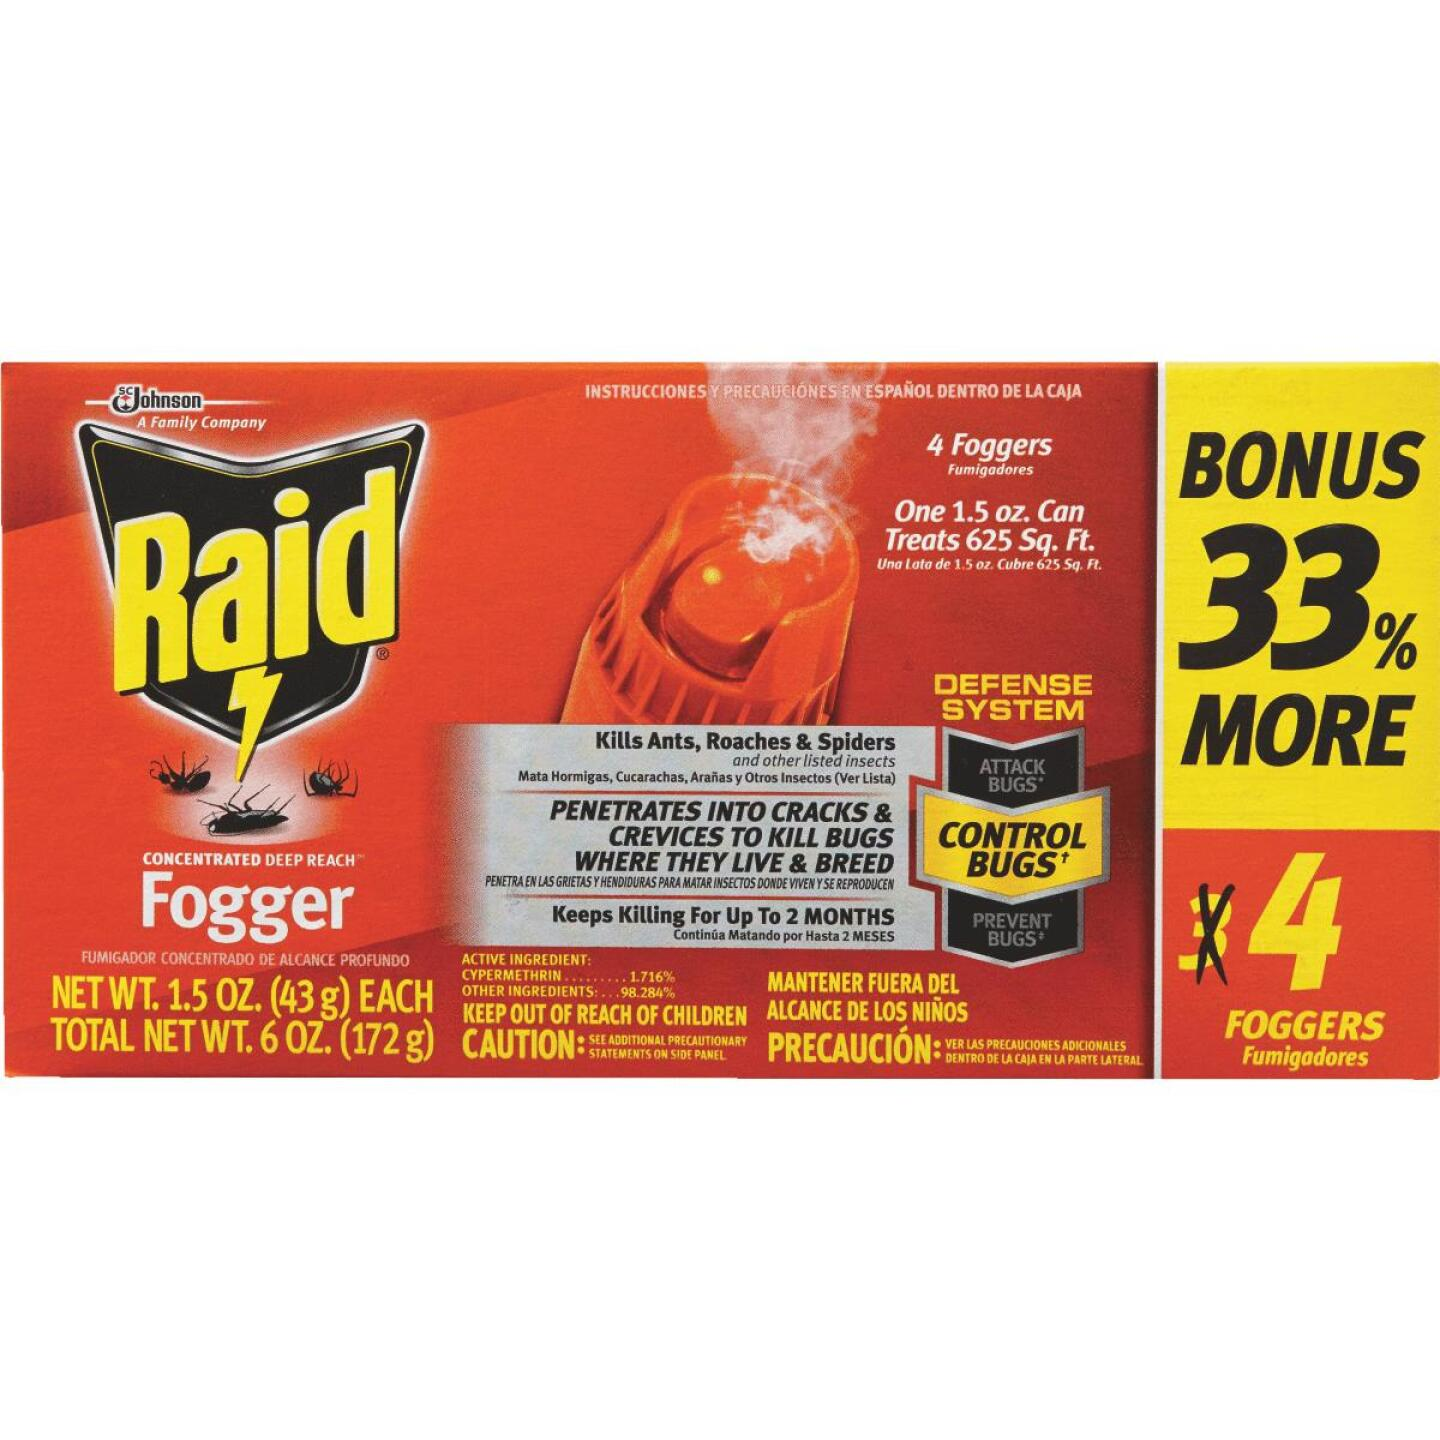 Raid Concentrated Deep Reach 1.5 Oz. Indoor Insect Fogger (4-Pack) Image 3